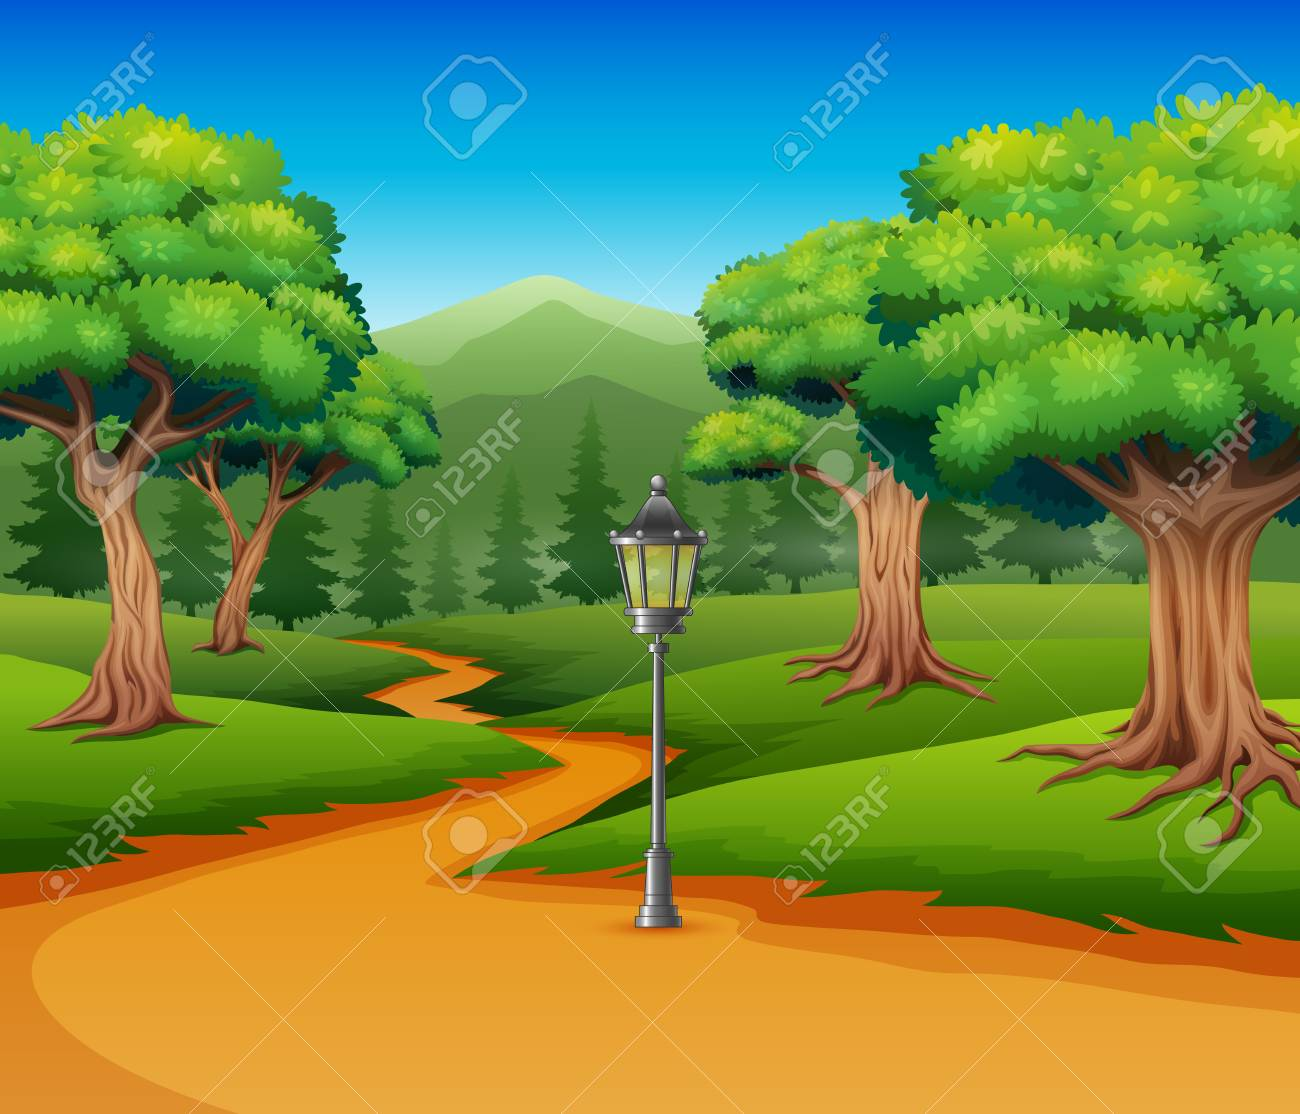 Cartoon Of Forest Background With Dirt Road Royalty Free Cliparts Vectors And Stock Illustration Image 113230619